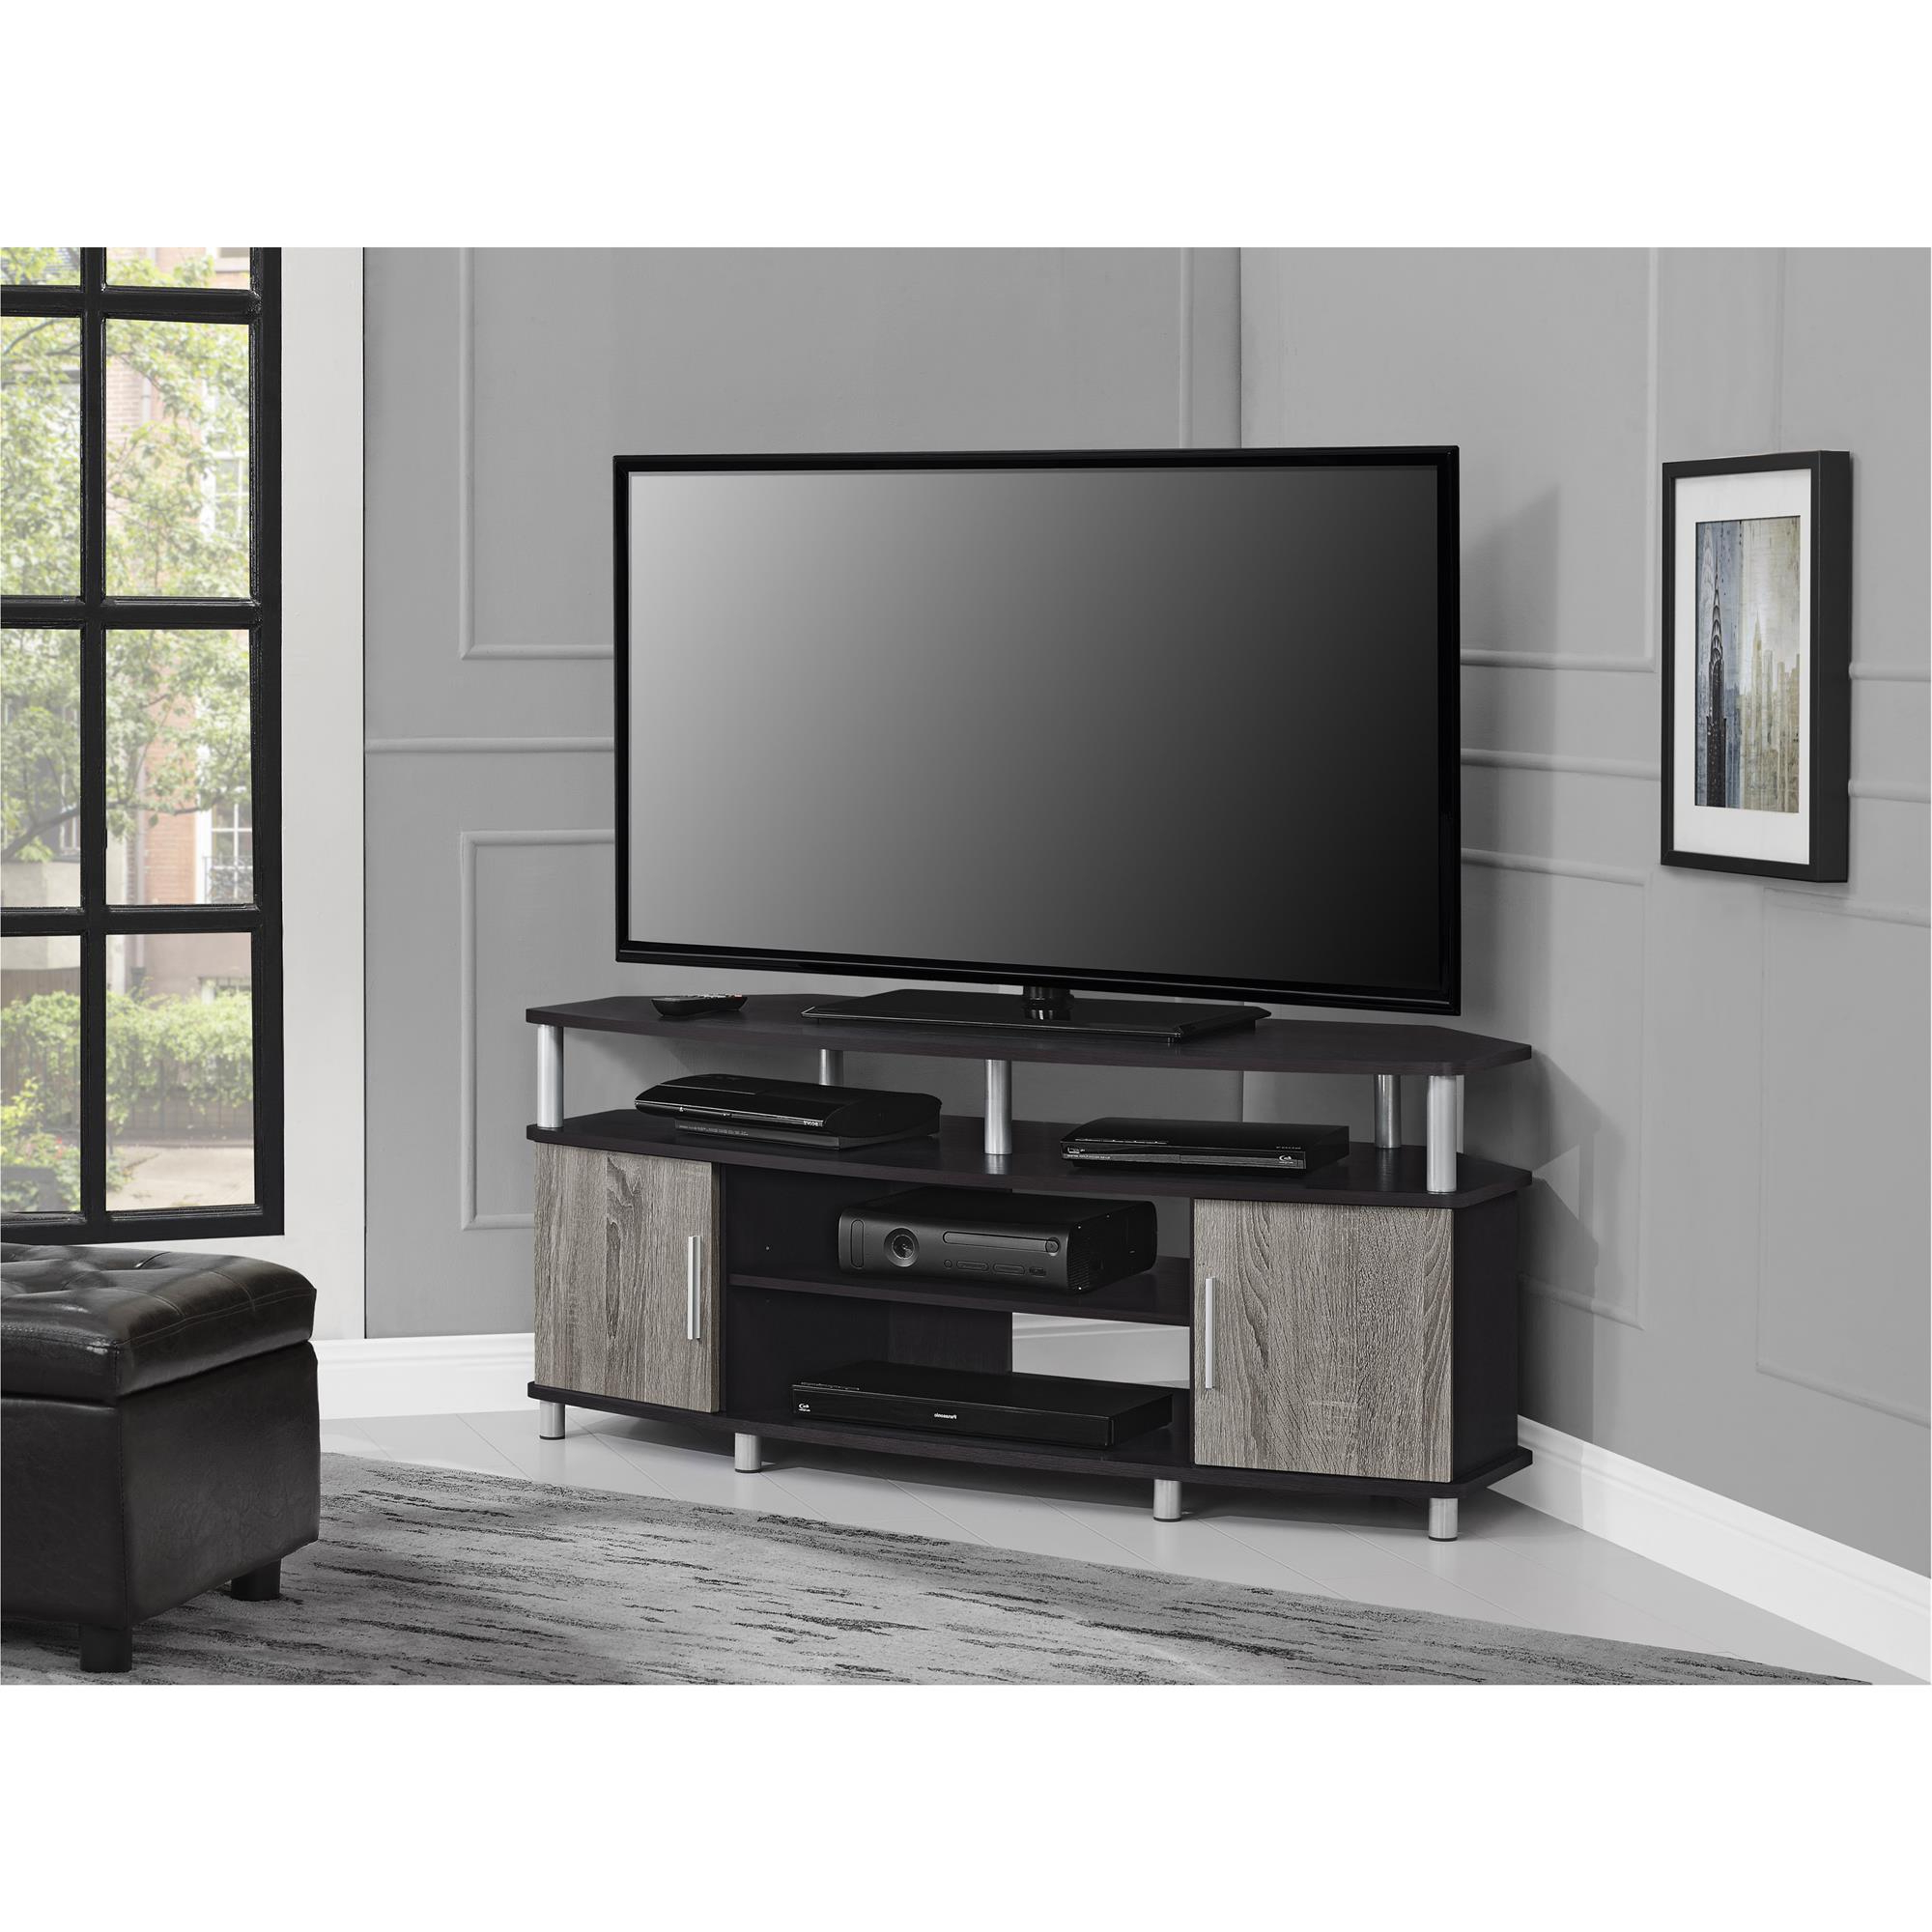 "Low Corner Tv Cabinets Within Famous Ameriwood Home Carson Corner Tv Stand For Tvs Up To 50"" Wide, Black (View 6 of 20)"